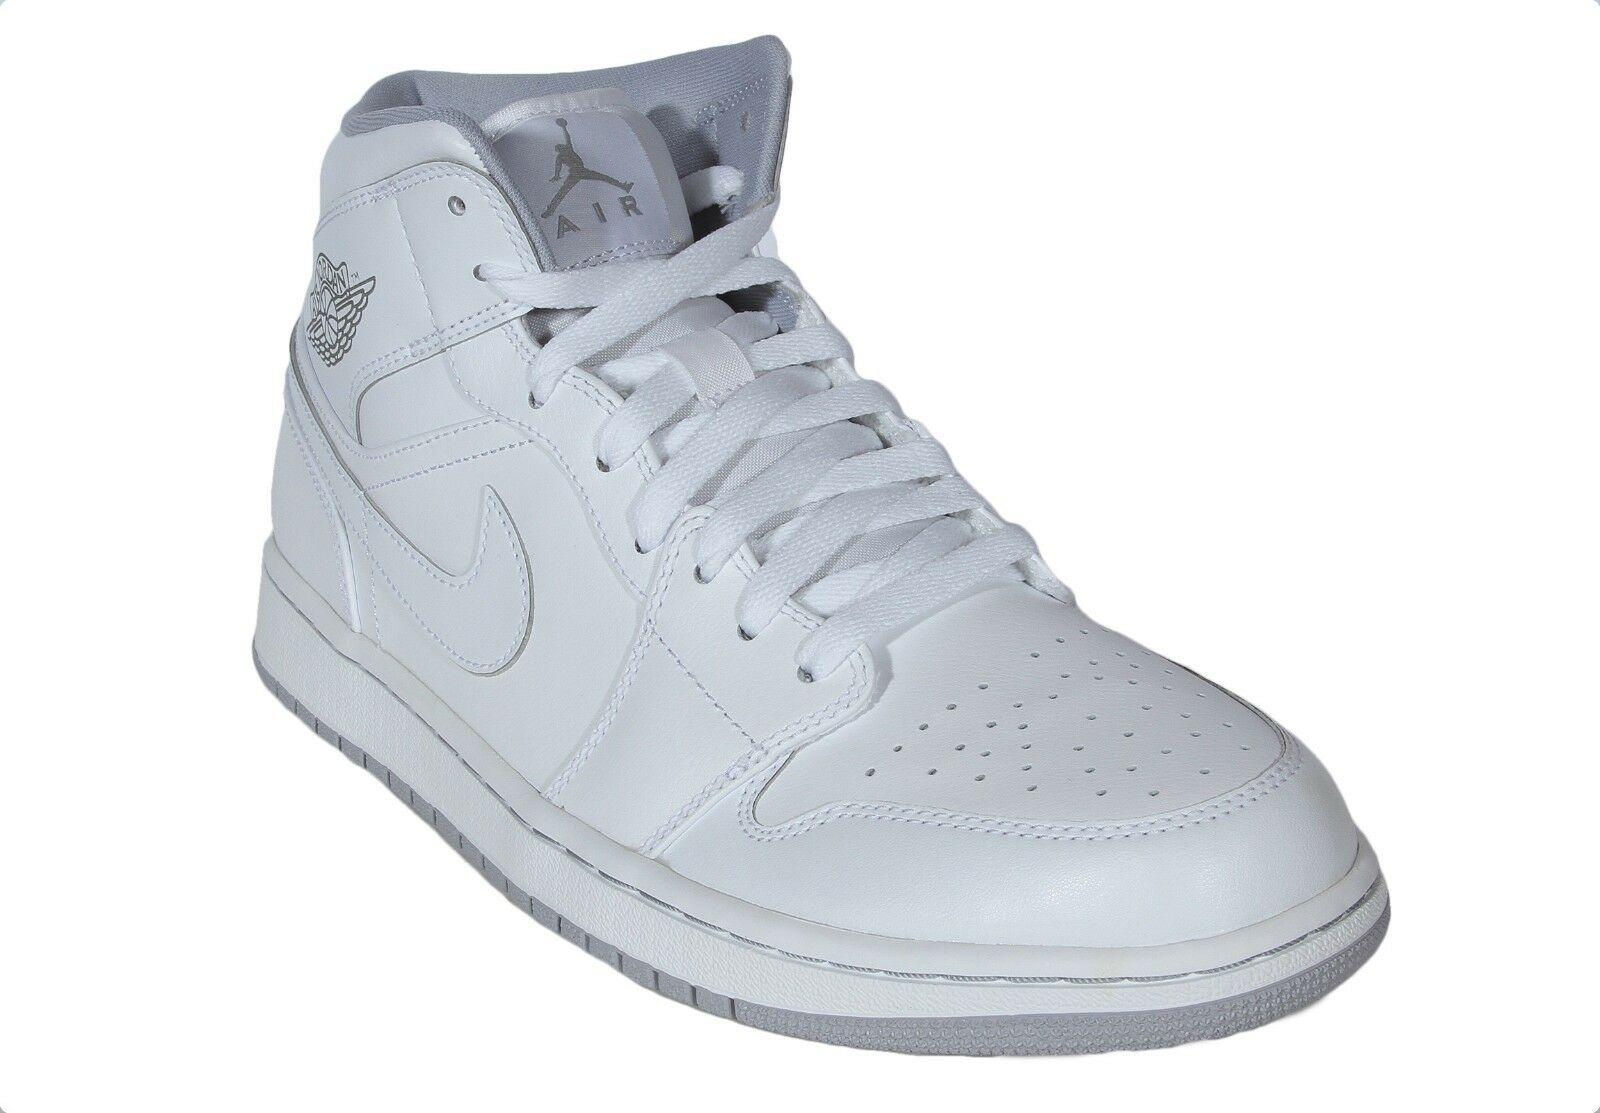 Air Jordan 1 Mid Men's Basketball Leather Shoes White Wolf Grey 554724-112